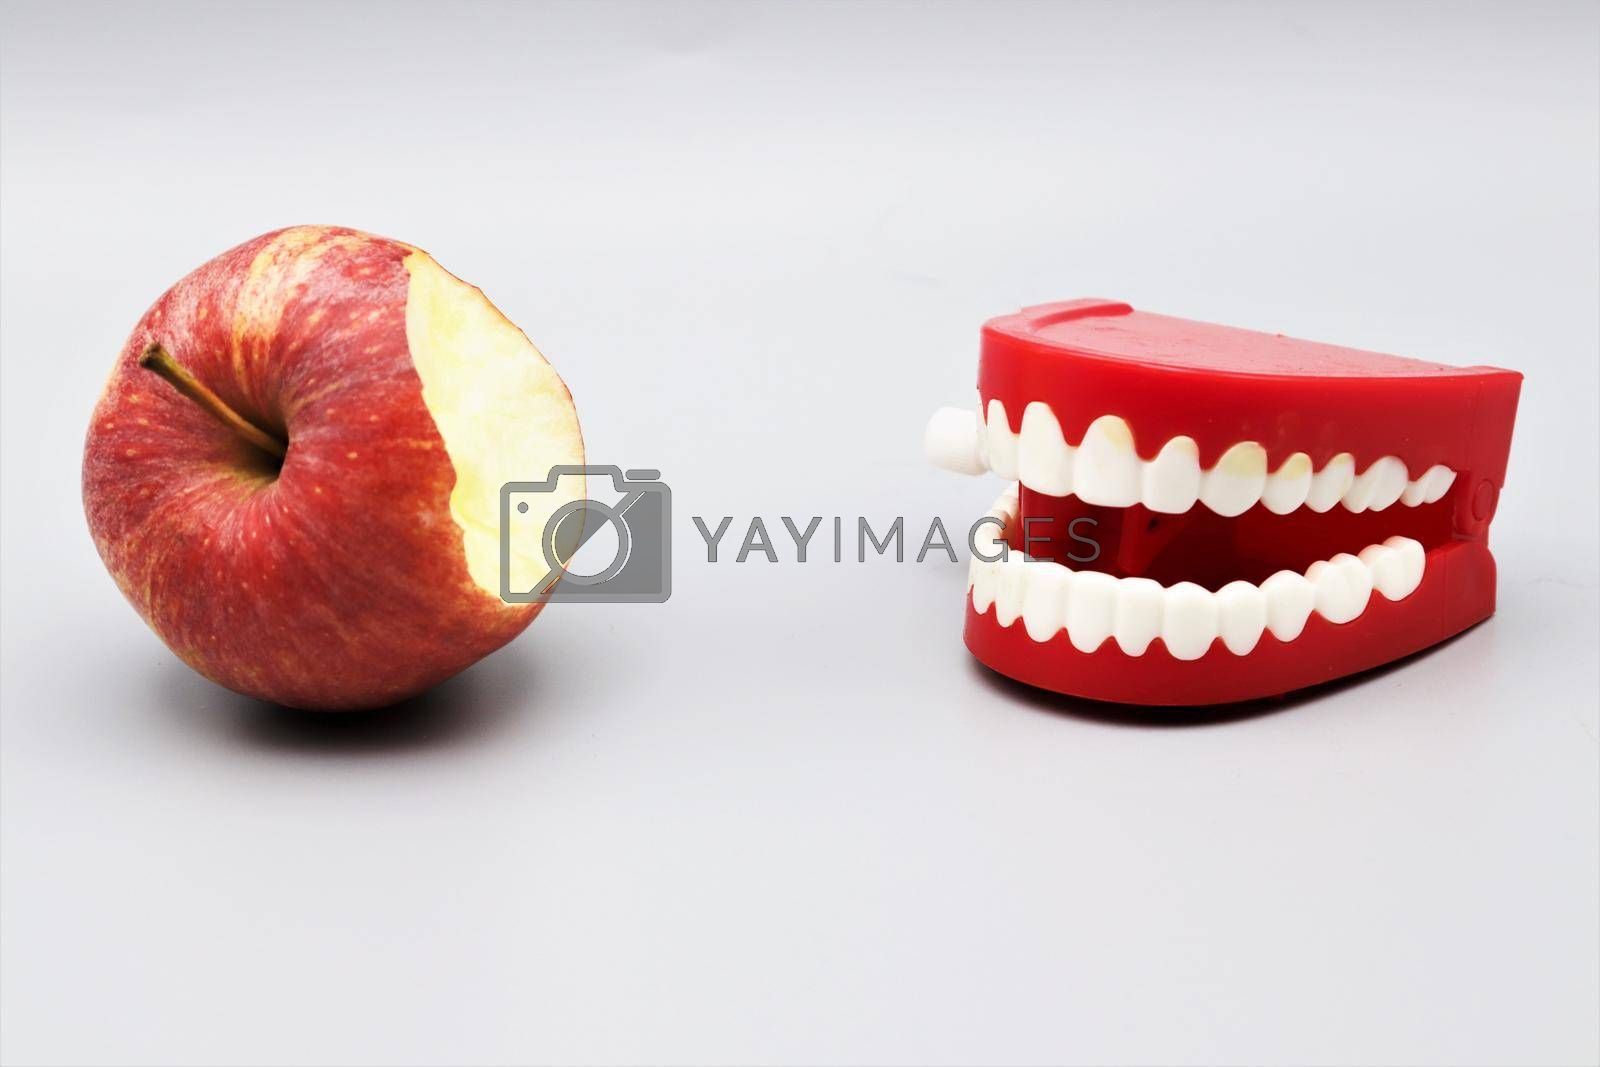 Chattering teeth takes a bite out of an apple, oral health